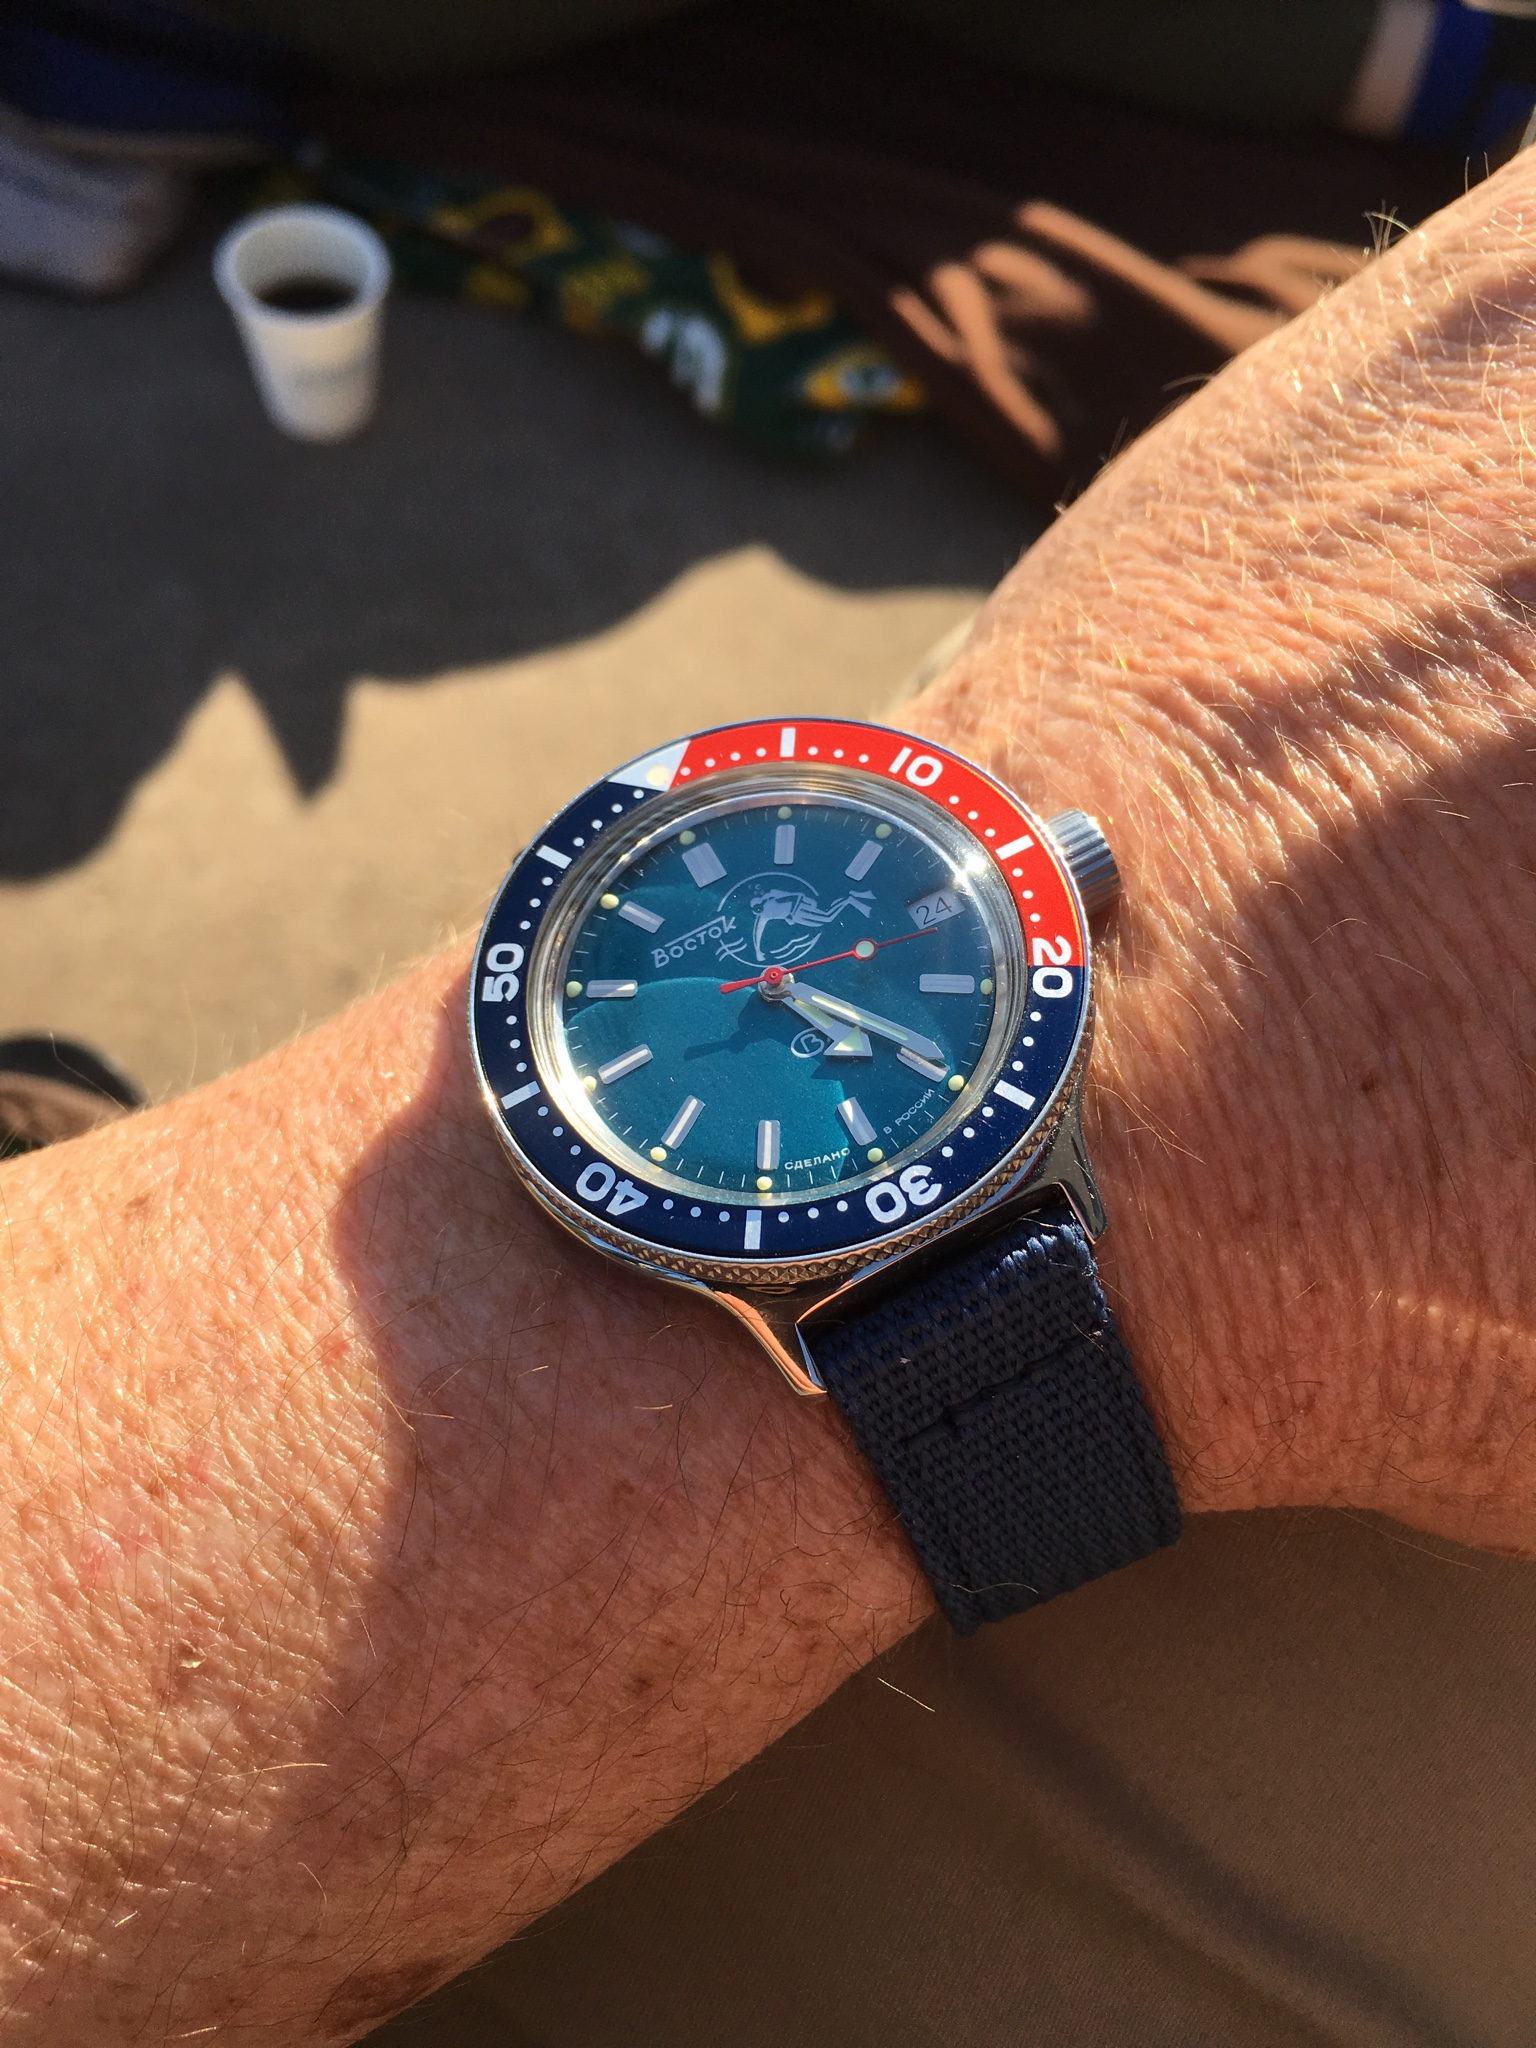 7fc6b89fa3b Show off your Seiko SKX013 (and other mid size divers)! - Page 28